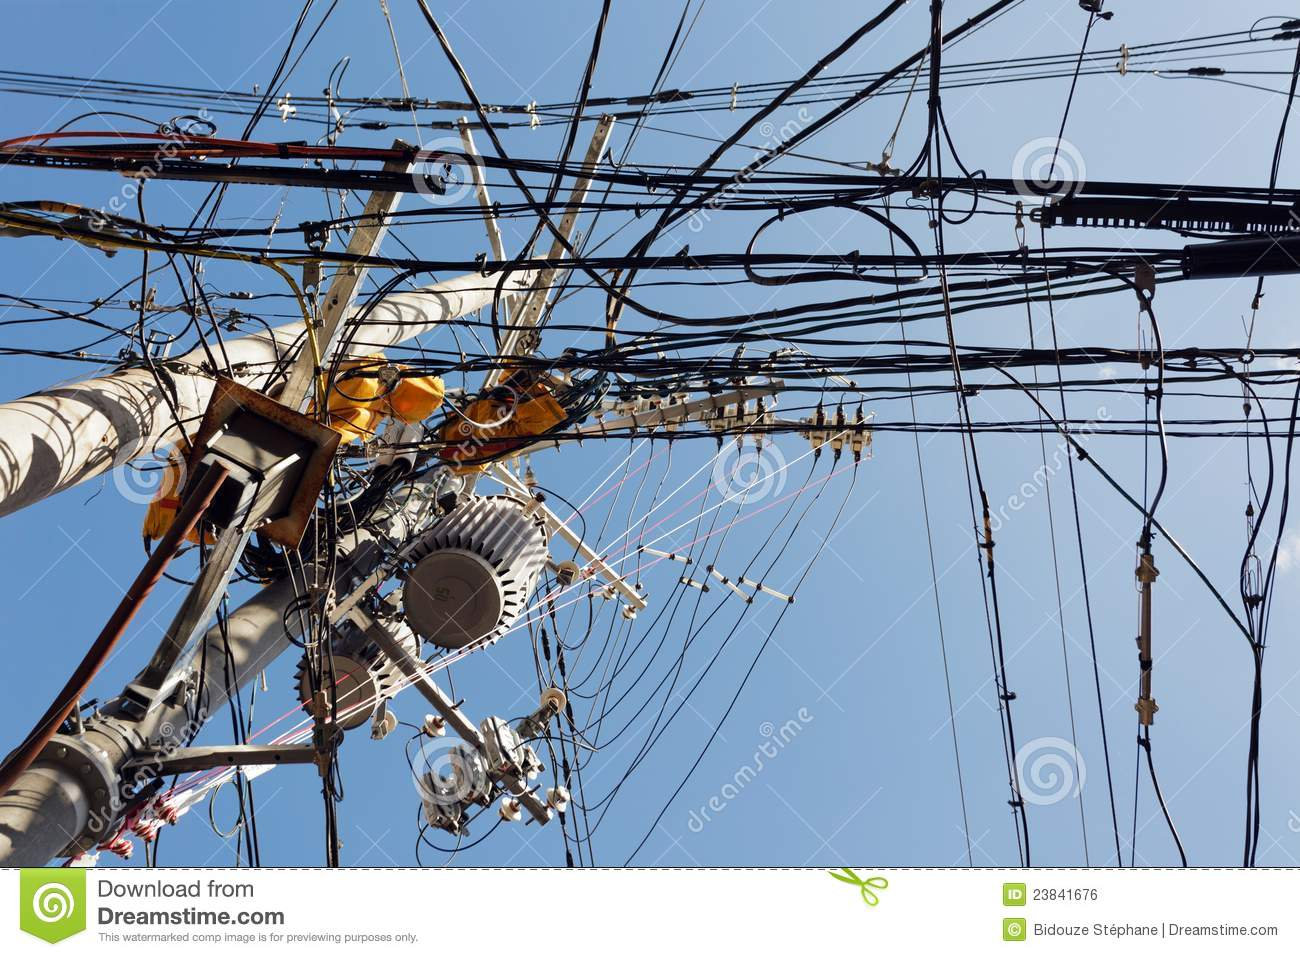 cartoon messy wiring  messy electric wire stock photo | cartoondealer.com #51326844 #11